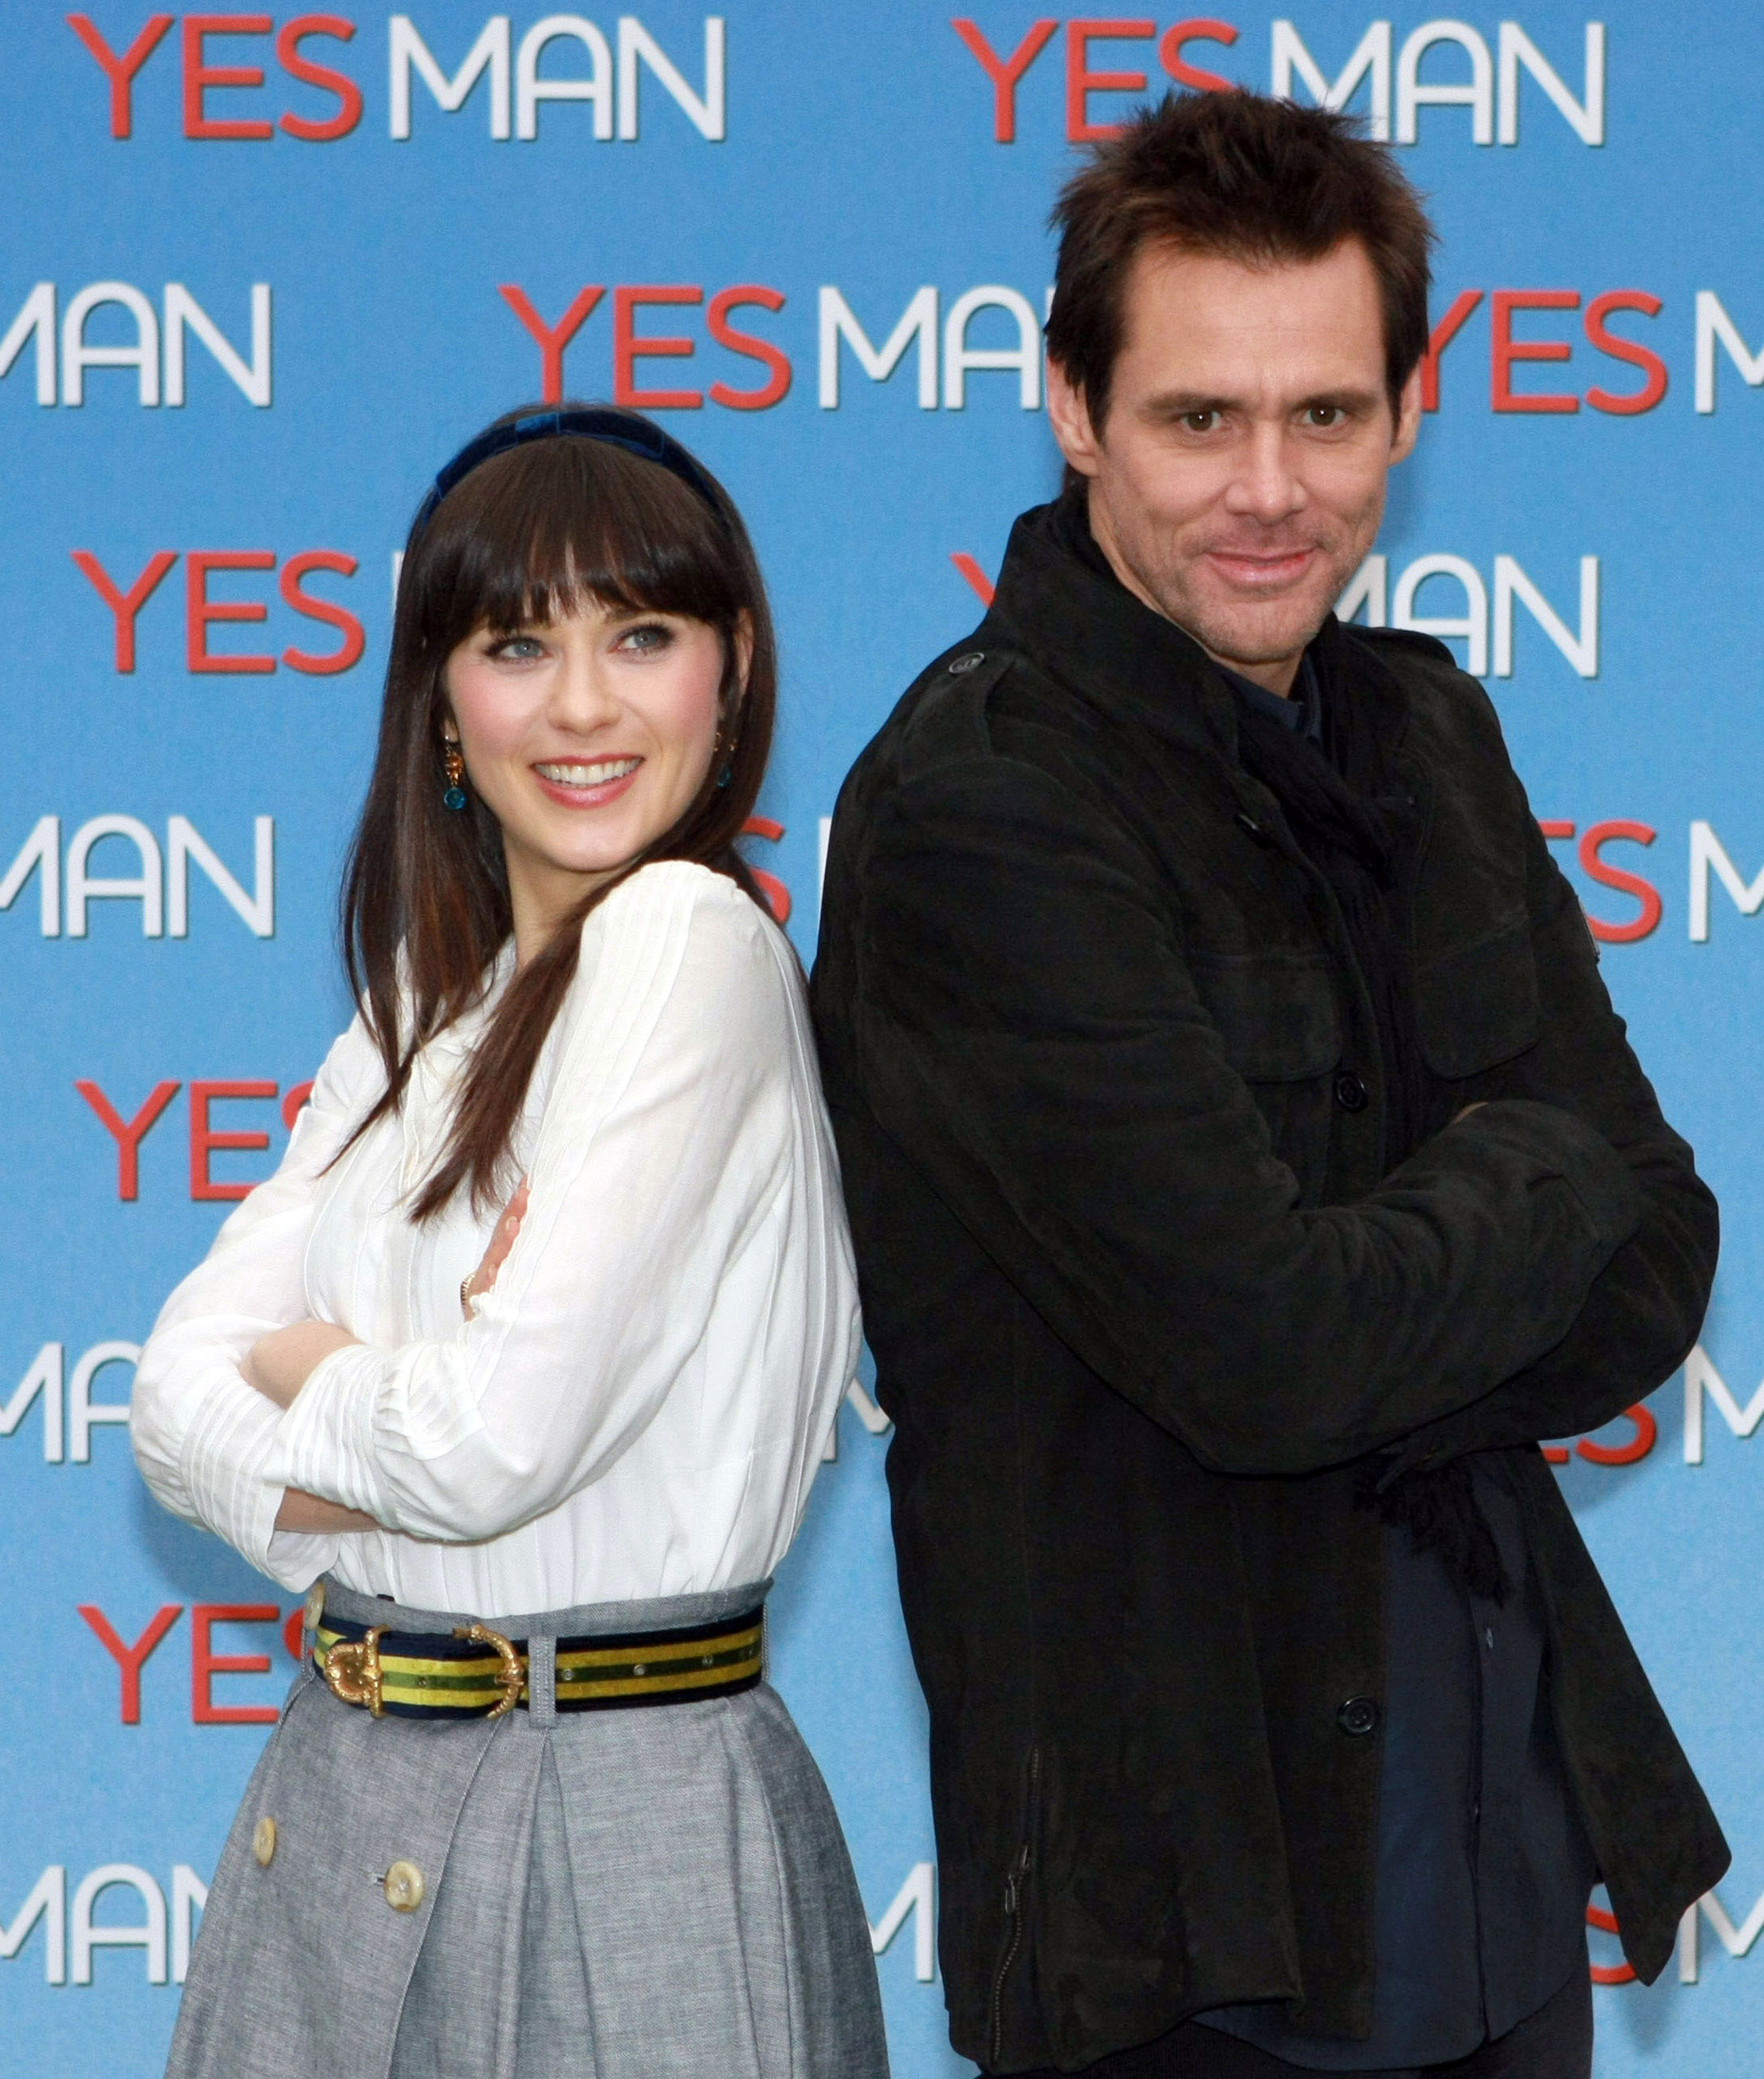 88714_Zooey_Deschanel-Yes_Man_photocall_in_Rome-02_122_960lo.jpg